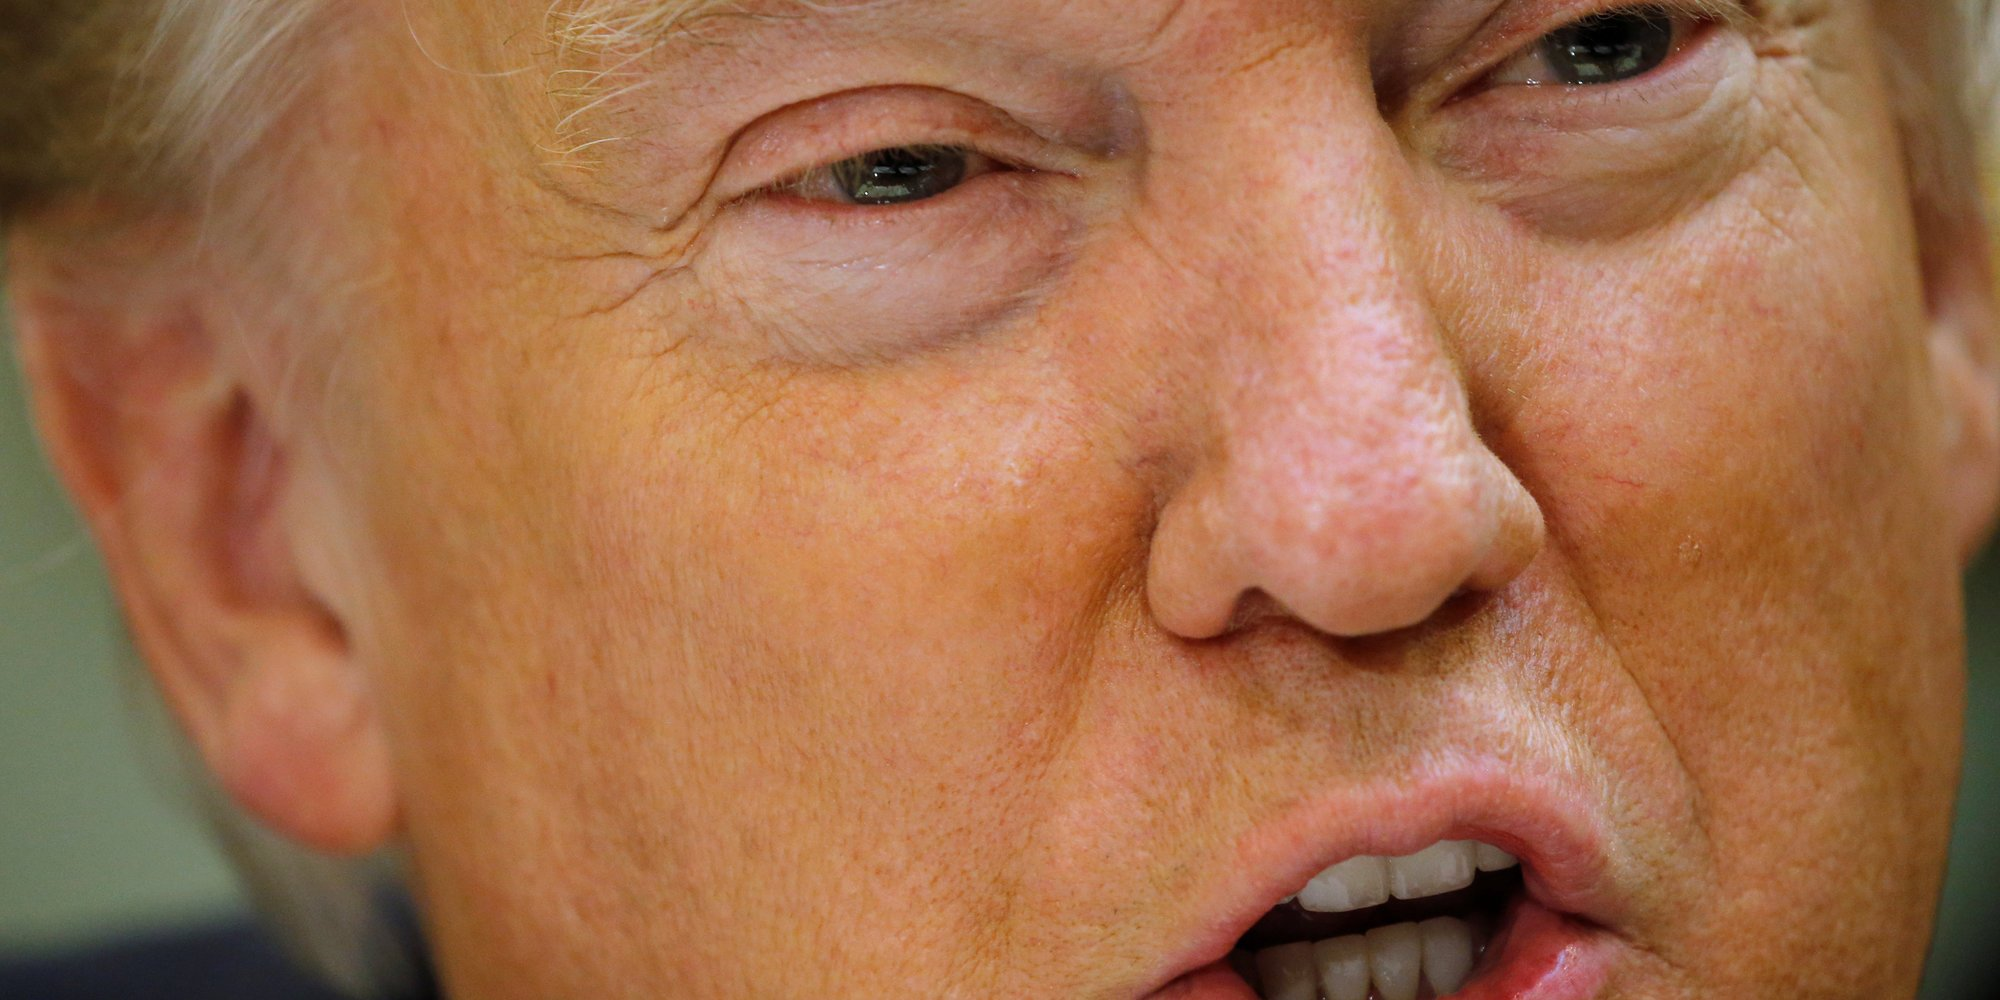 Thumbnail for Trump Slams Judge; Dictator Visits Brussels: HRW Daily Brief